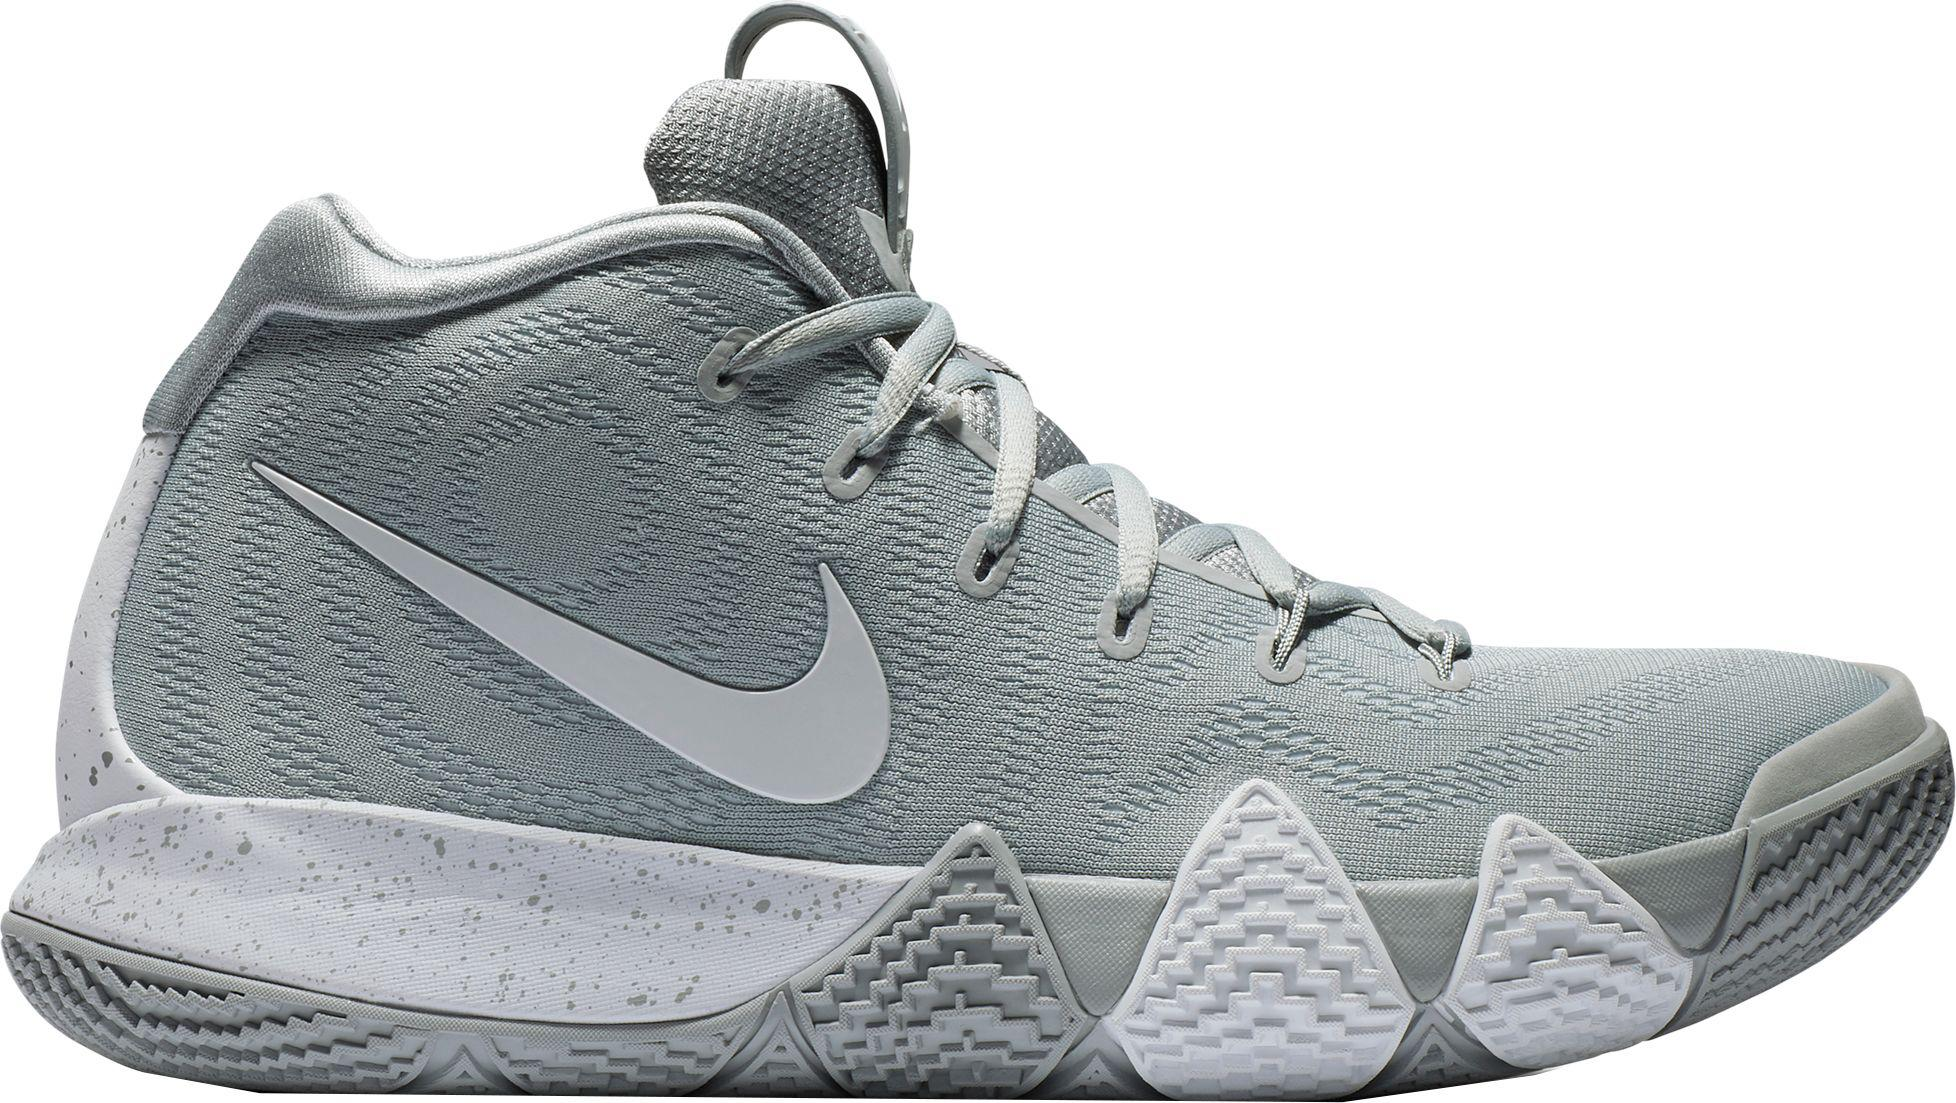 6a41fd05d643 Lyst - Nike Kyrie 4 Tb Basketball Shoes in Gray for Men